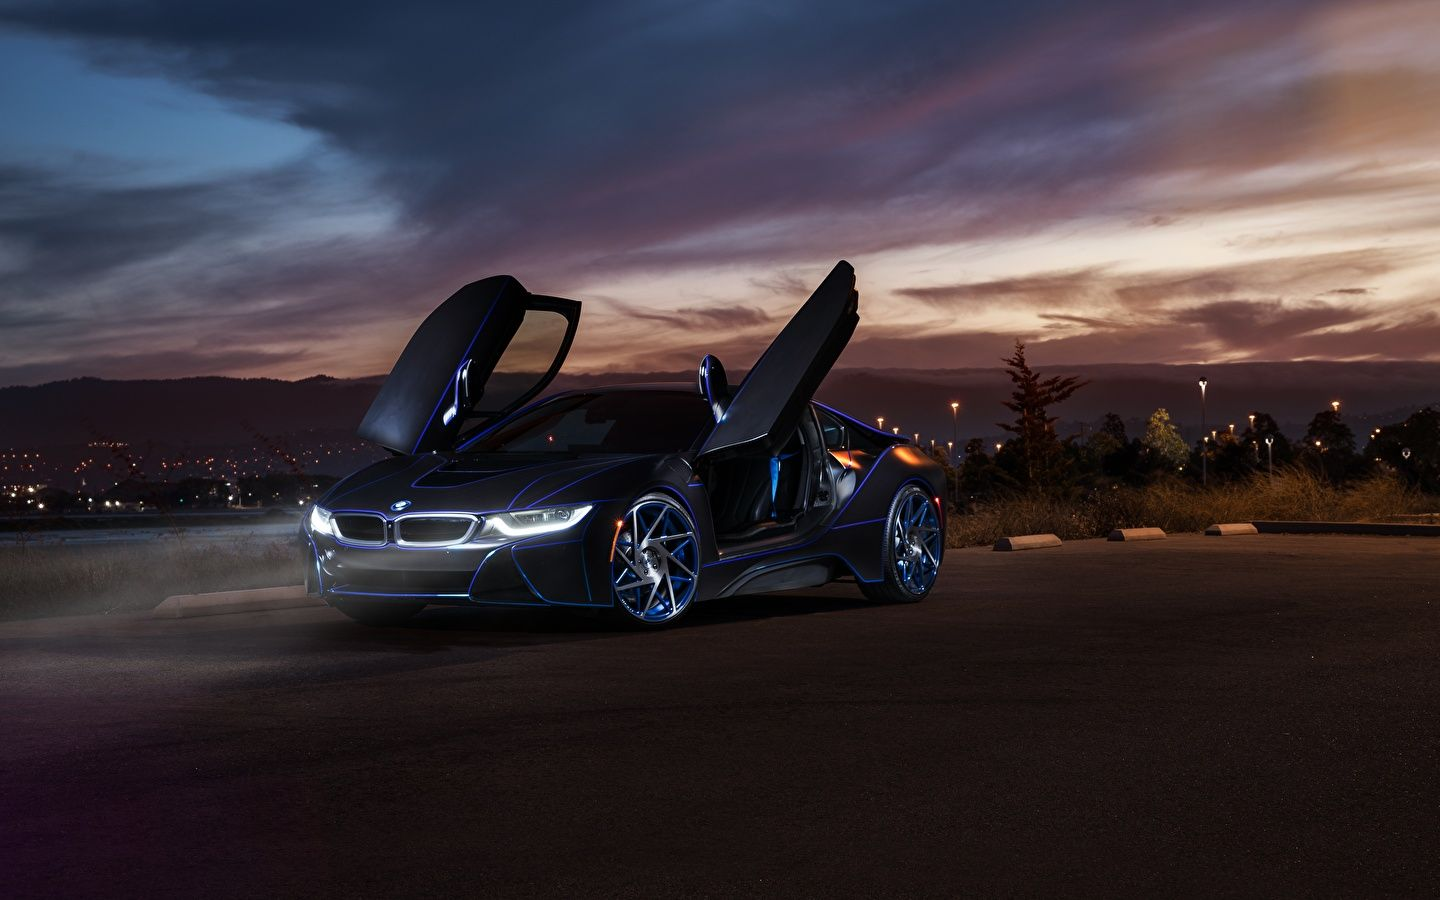 Bmw I8 At Night Wallpaper 1080p Bmw Bmw I8 Supercars Wallpapers